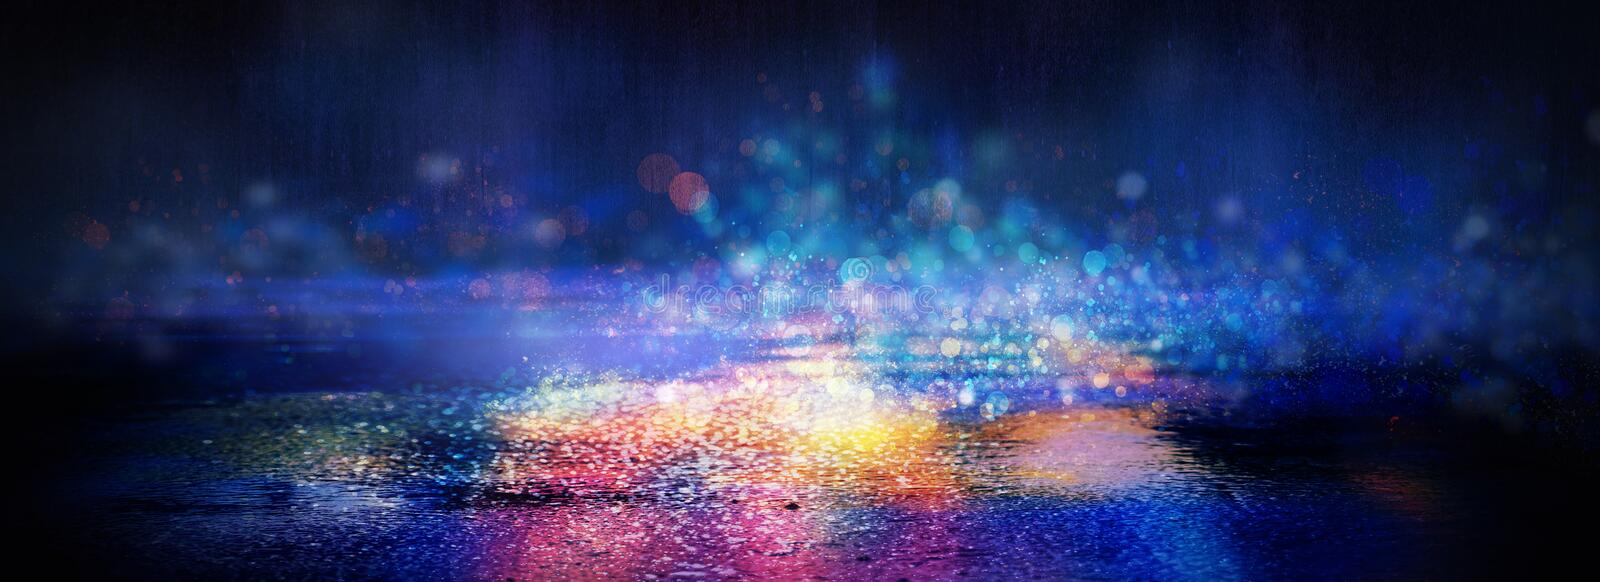 Wet asphalt after rain, reflection of neon lights in puddles. The lights of the night, neon city. Abstract dark background. stock image